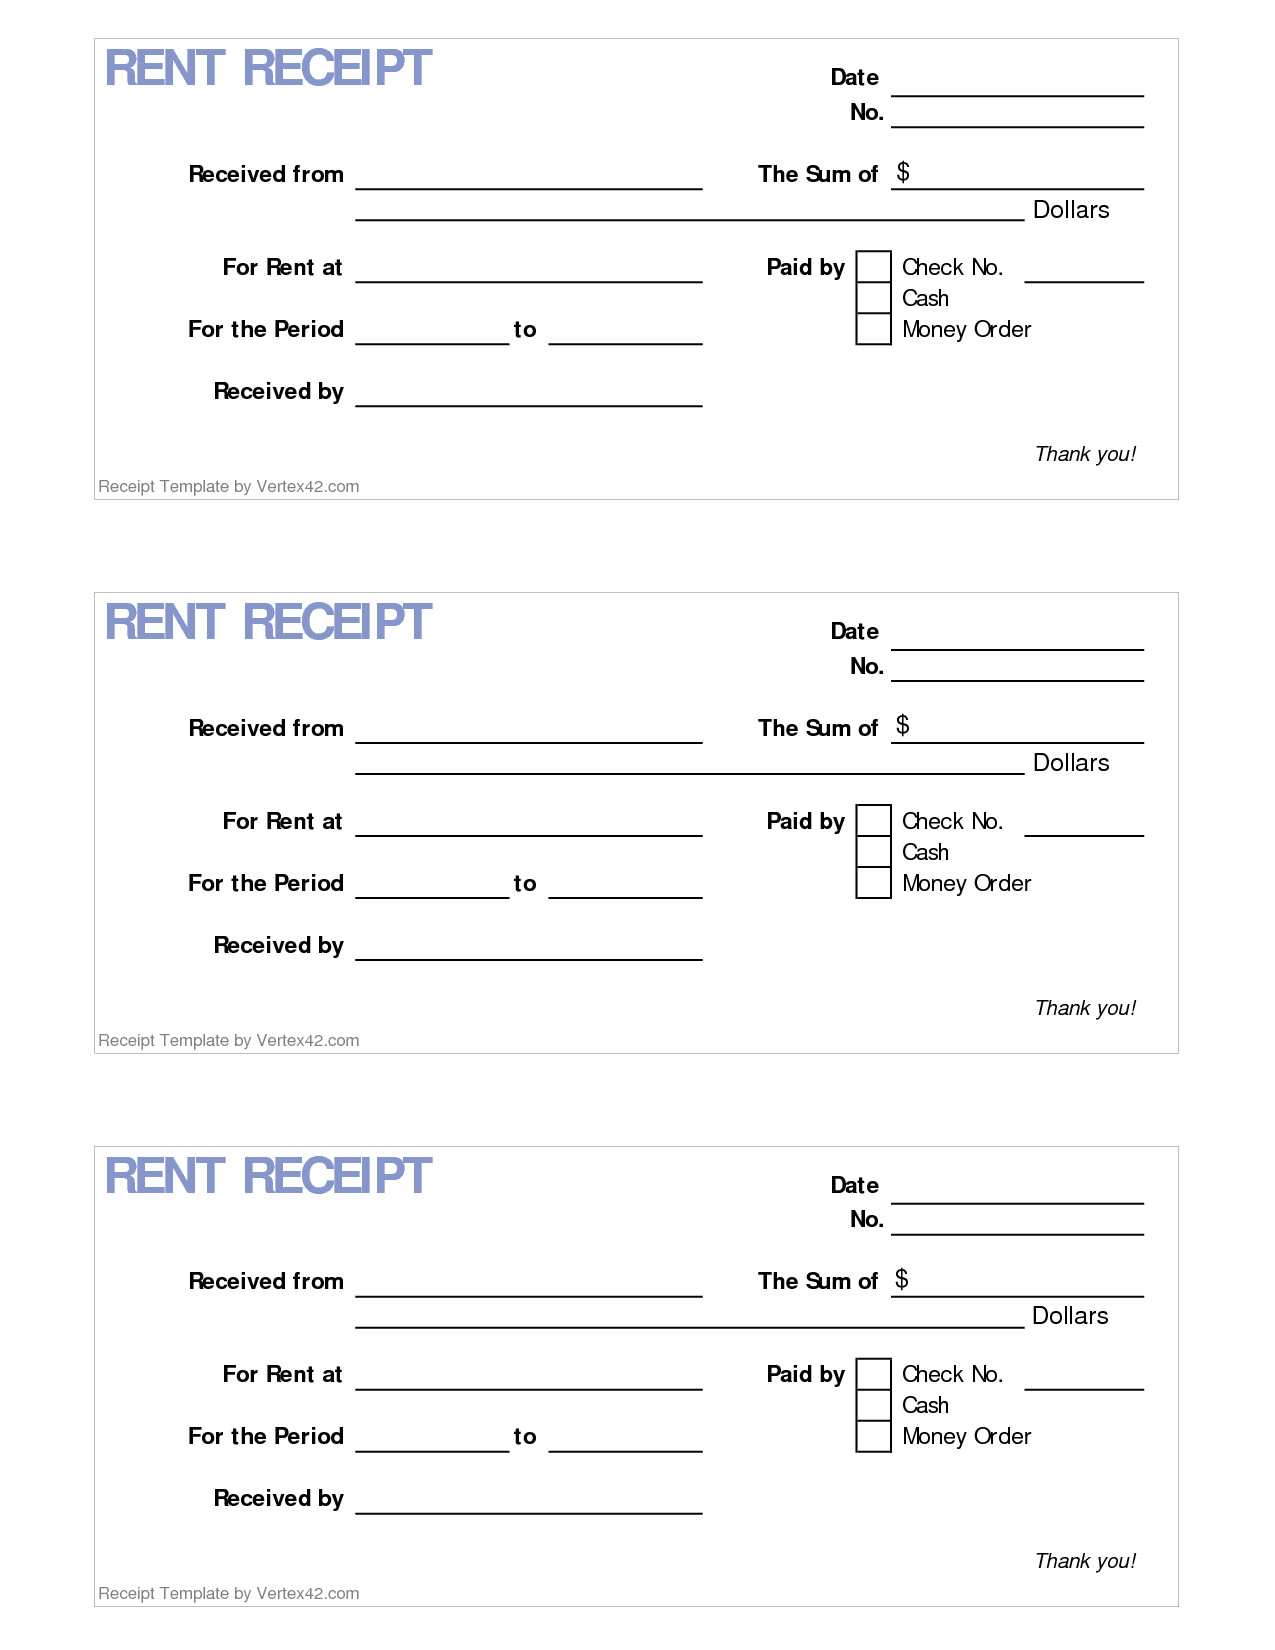 post printable rent receipt template 362120